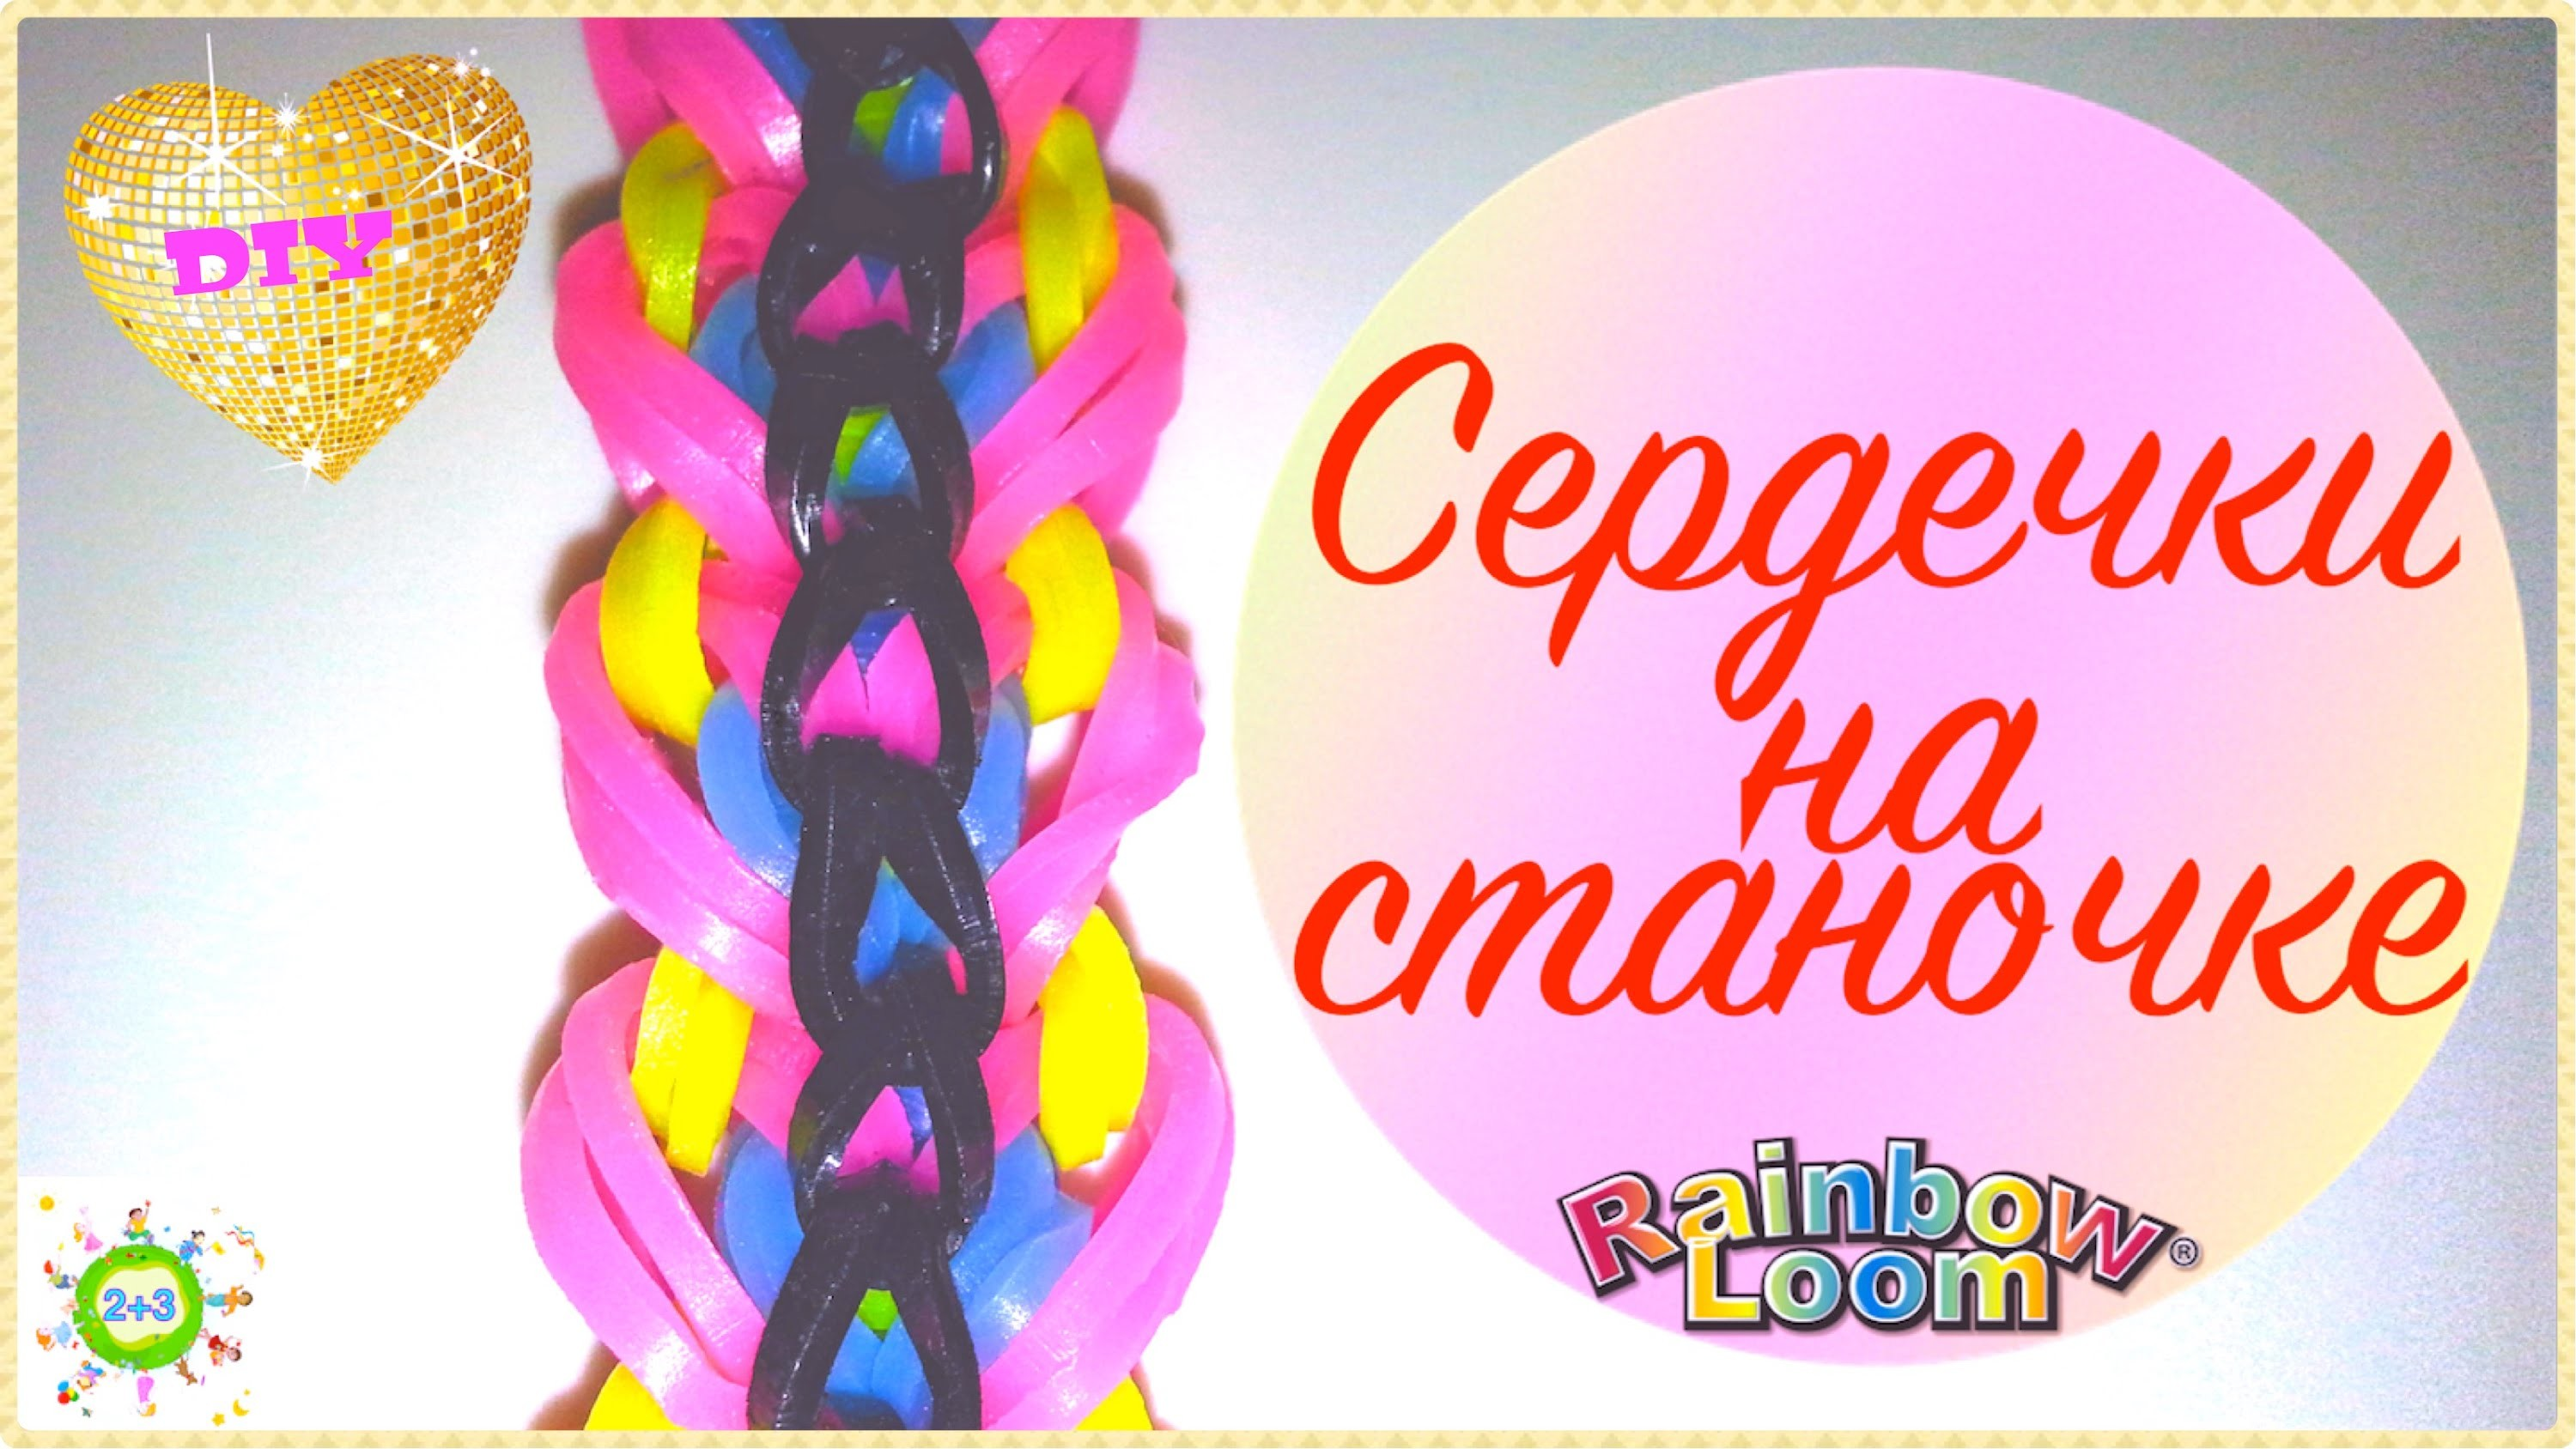 Сердечки на станочке Rainbow Loom Bands tutorial for kids DIY online